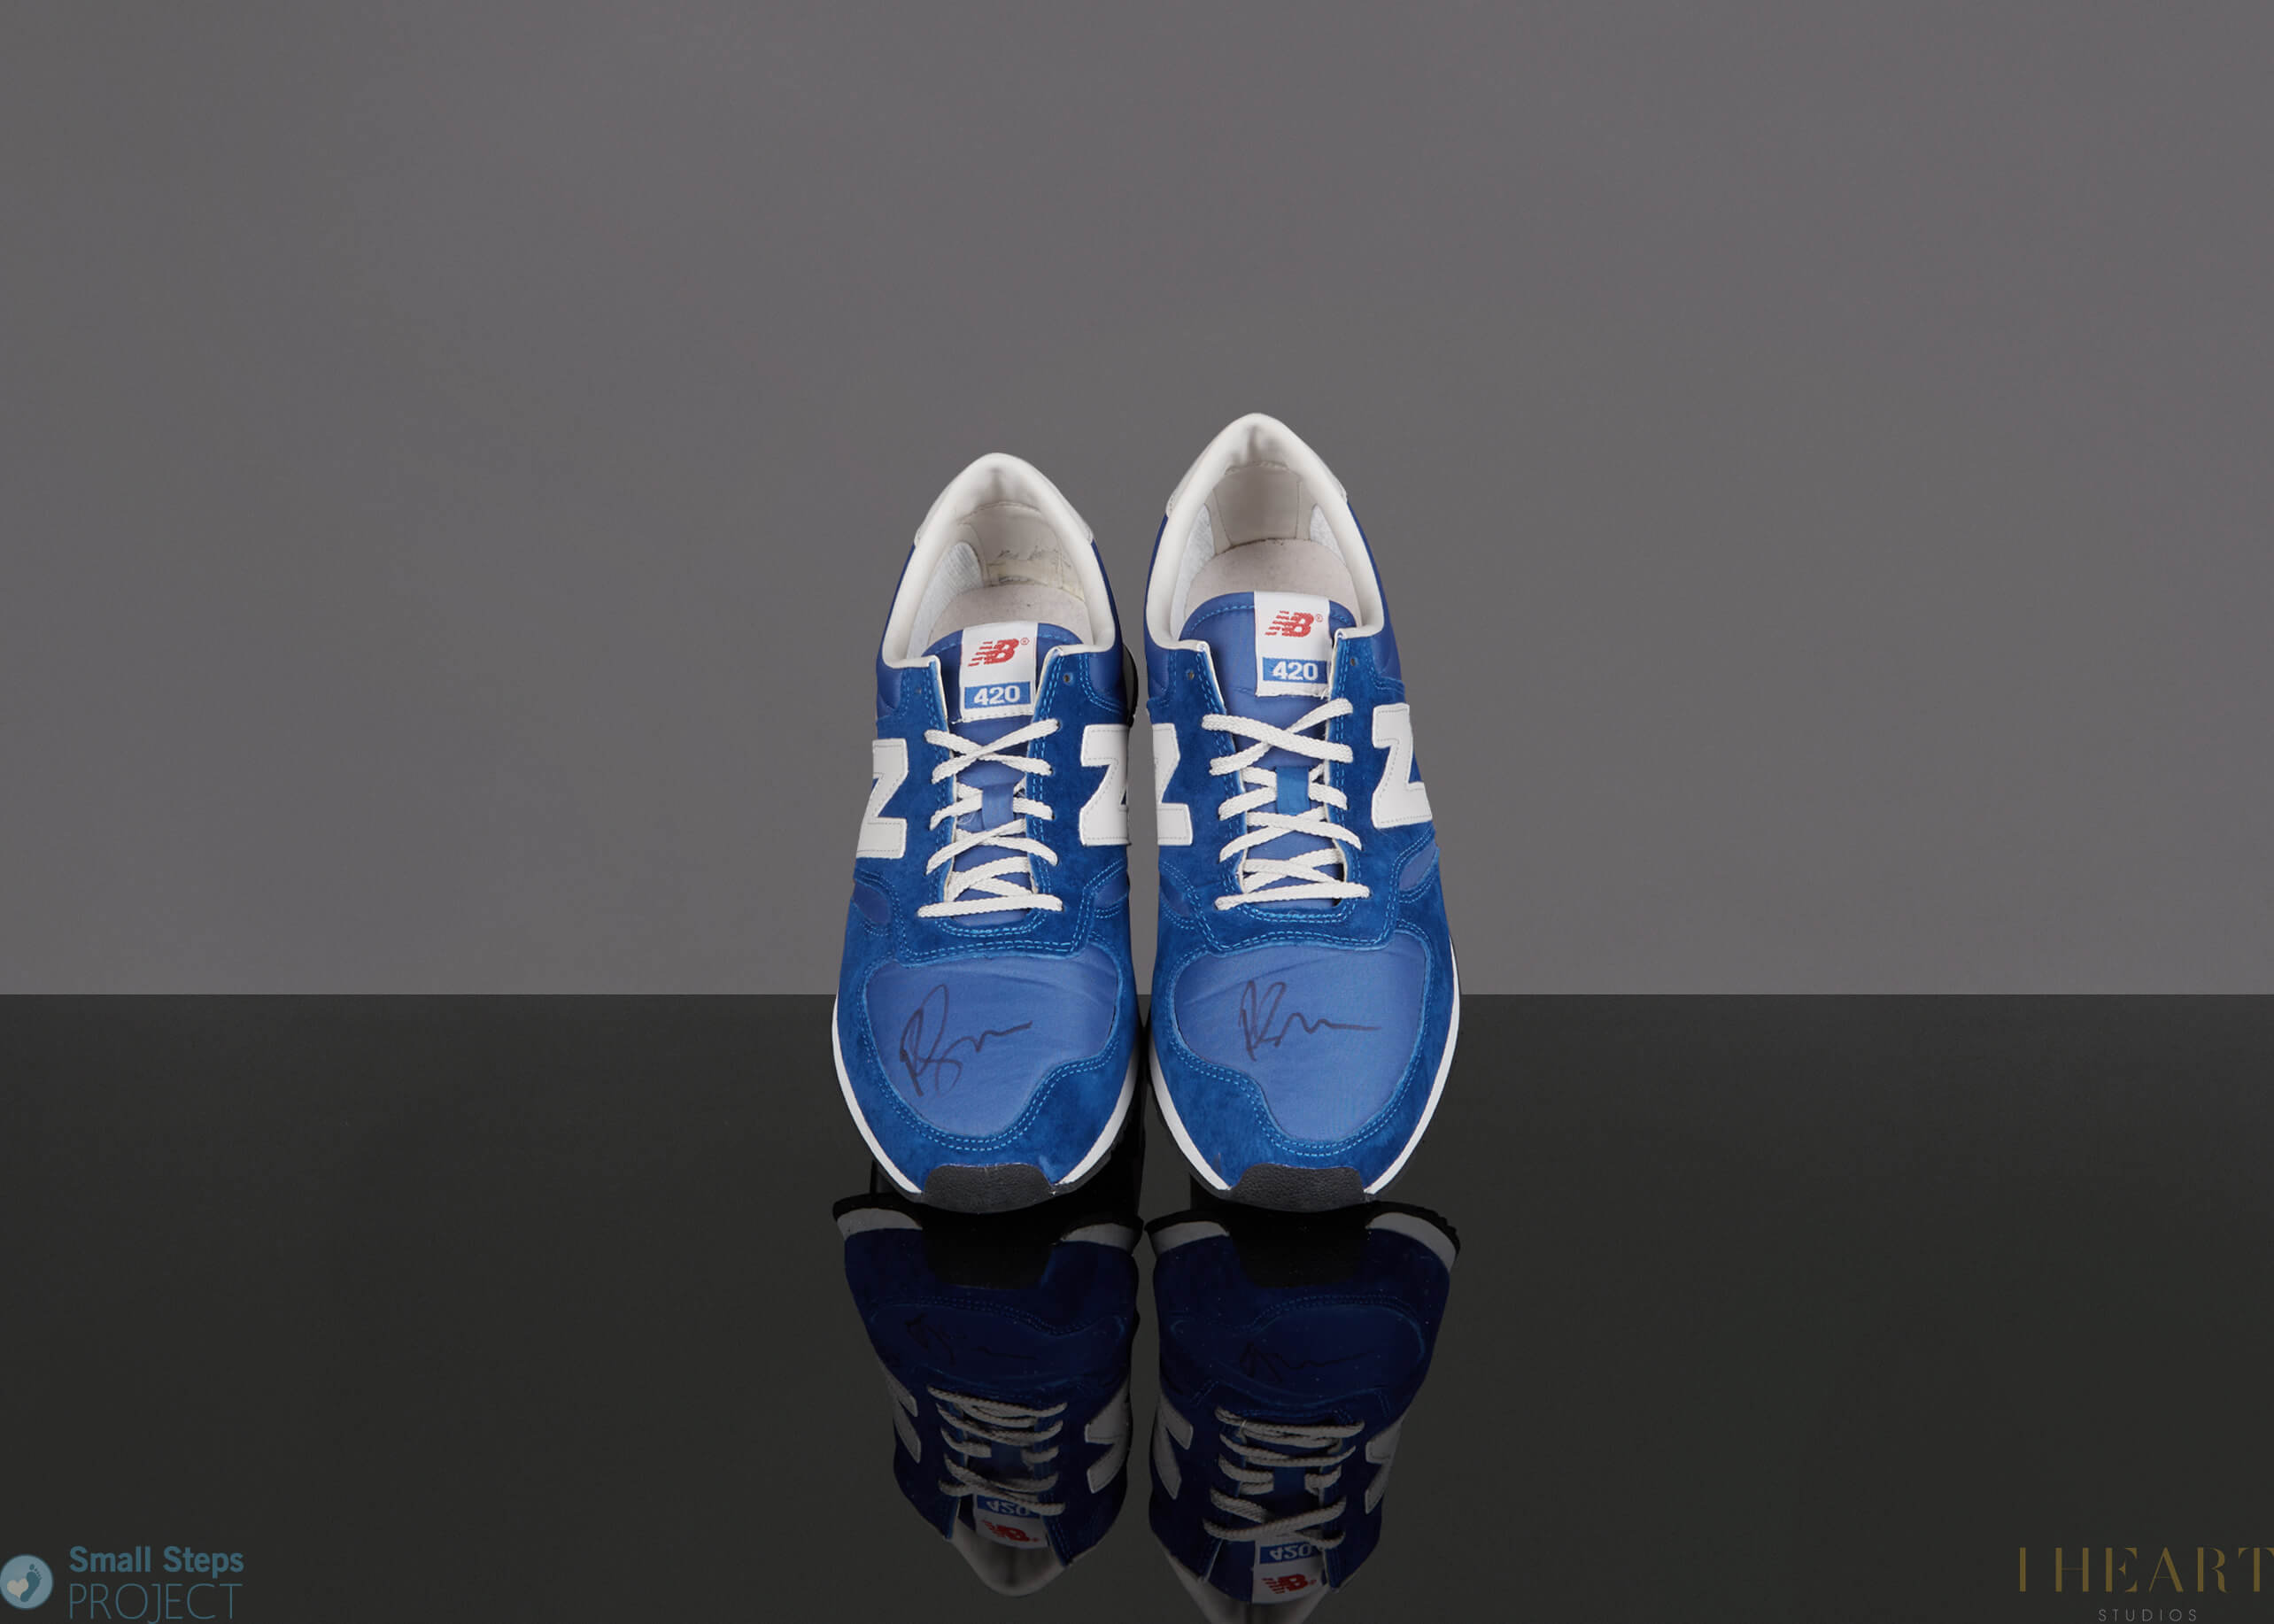 """In 2014 Ricky donated a pair of blue New Balance trainers which are a size UK8. Ricky told us: """"These shoes have run around New York, London & LA. Slowly. One careful owner""""."""